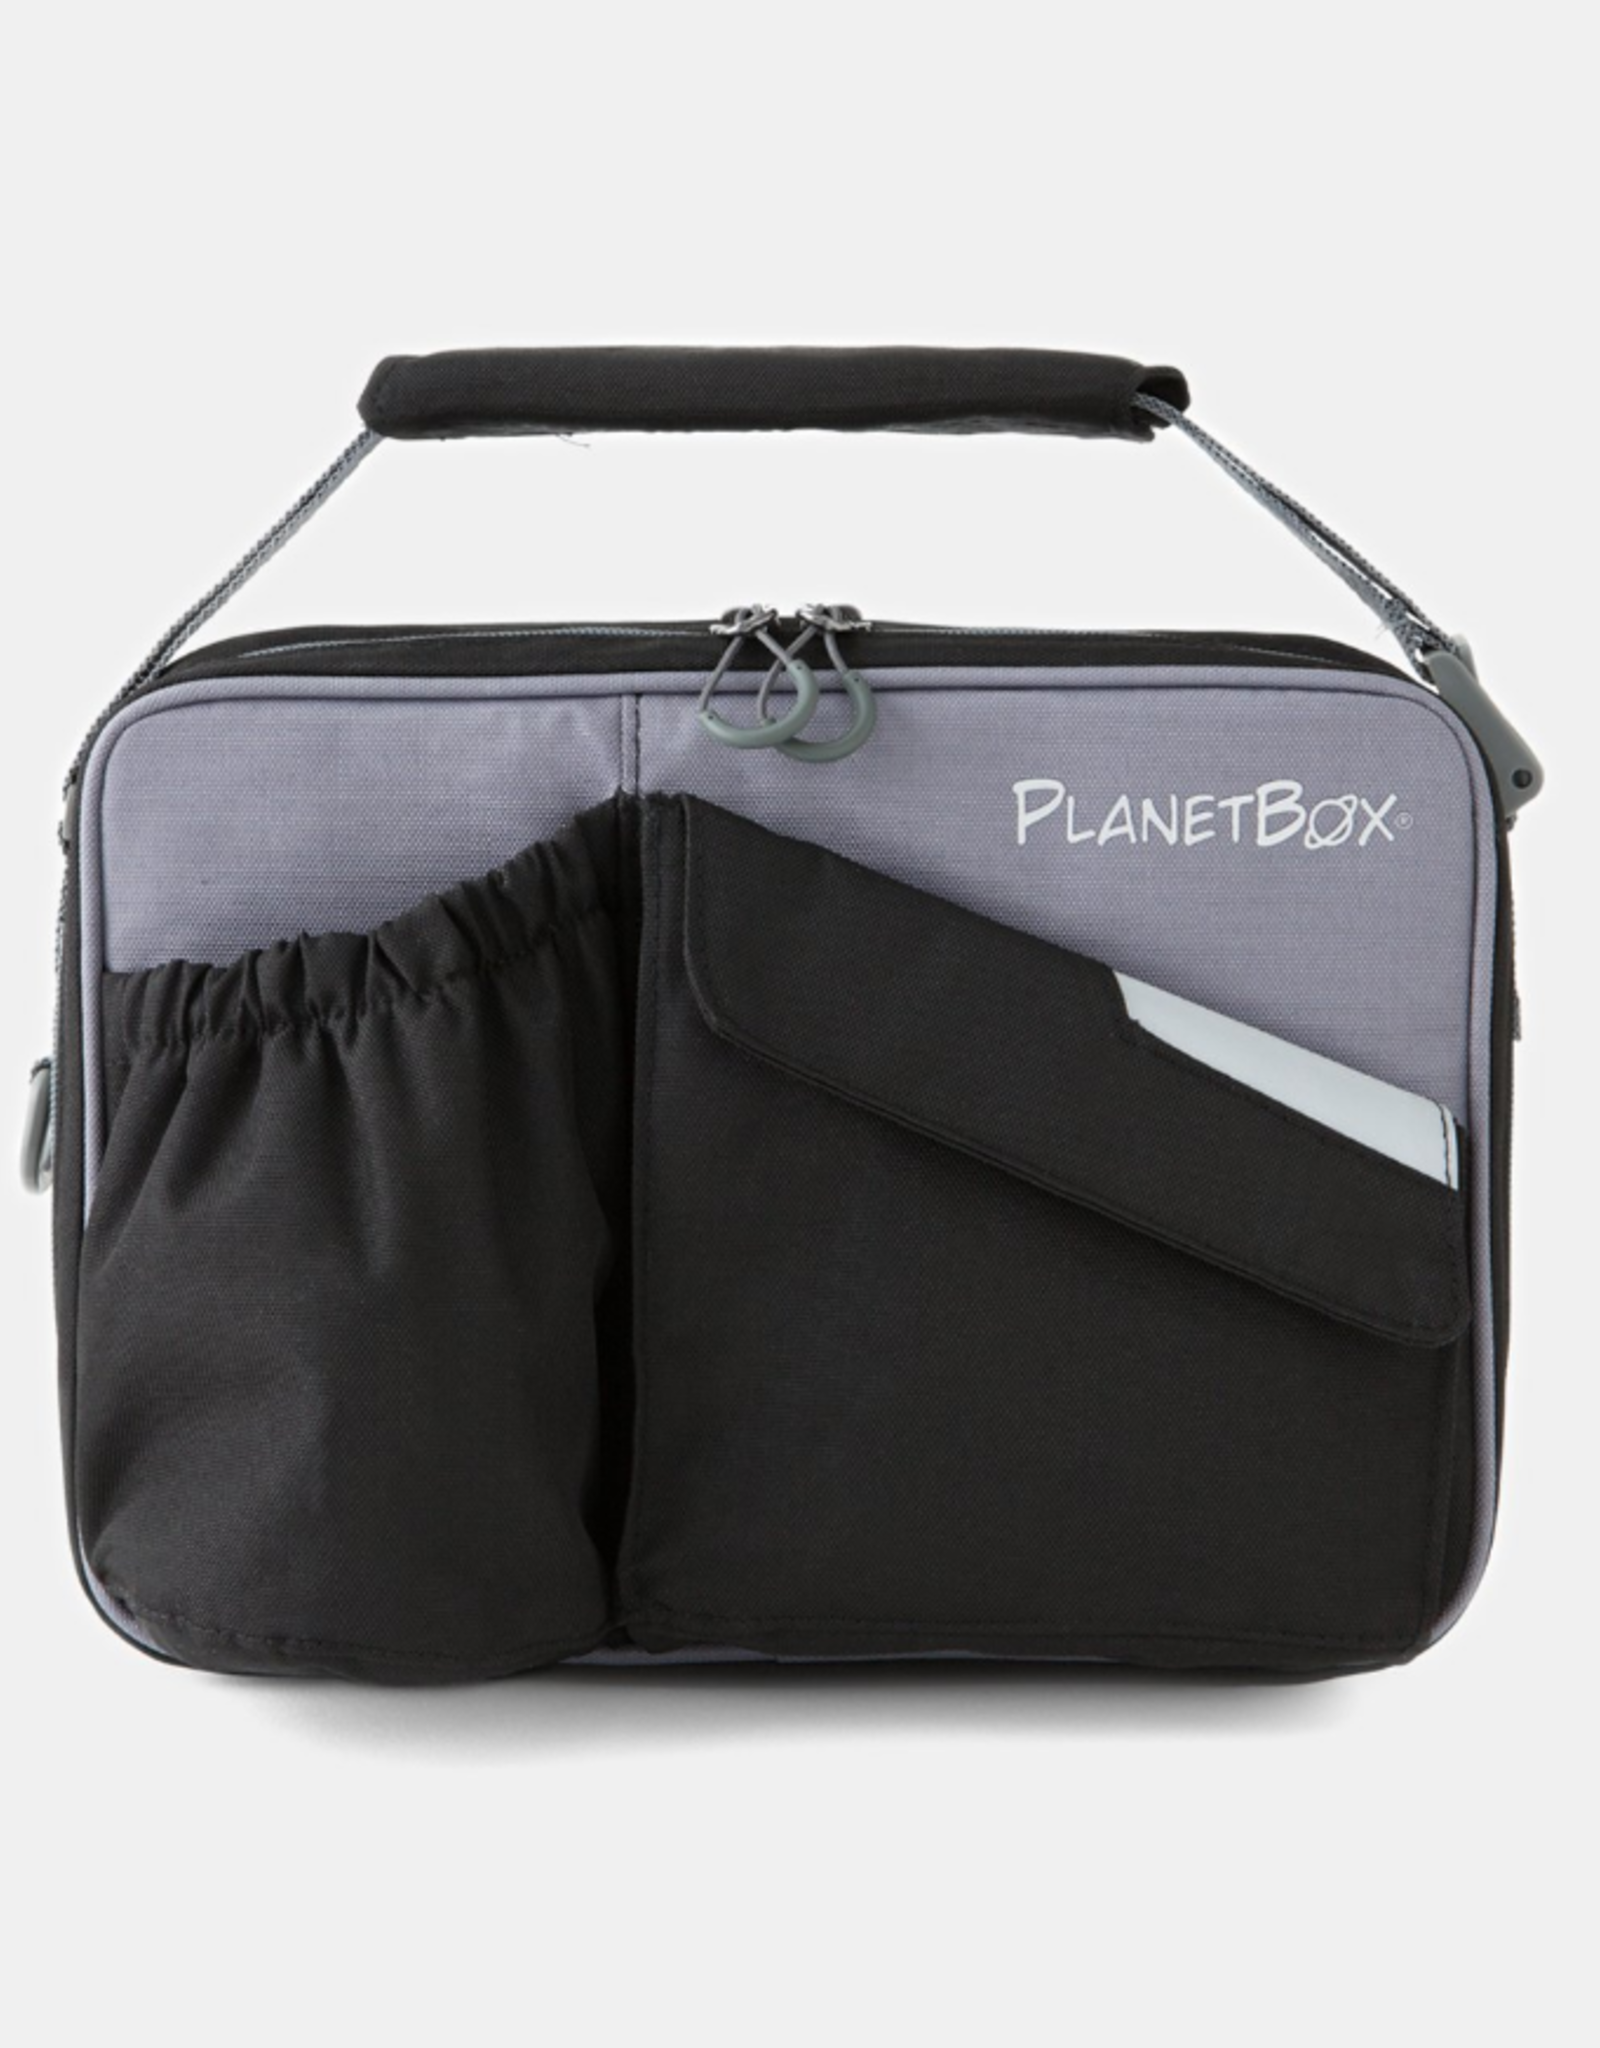 Planet Box PlanetBox - Carry Bag - Black Currant